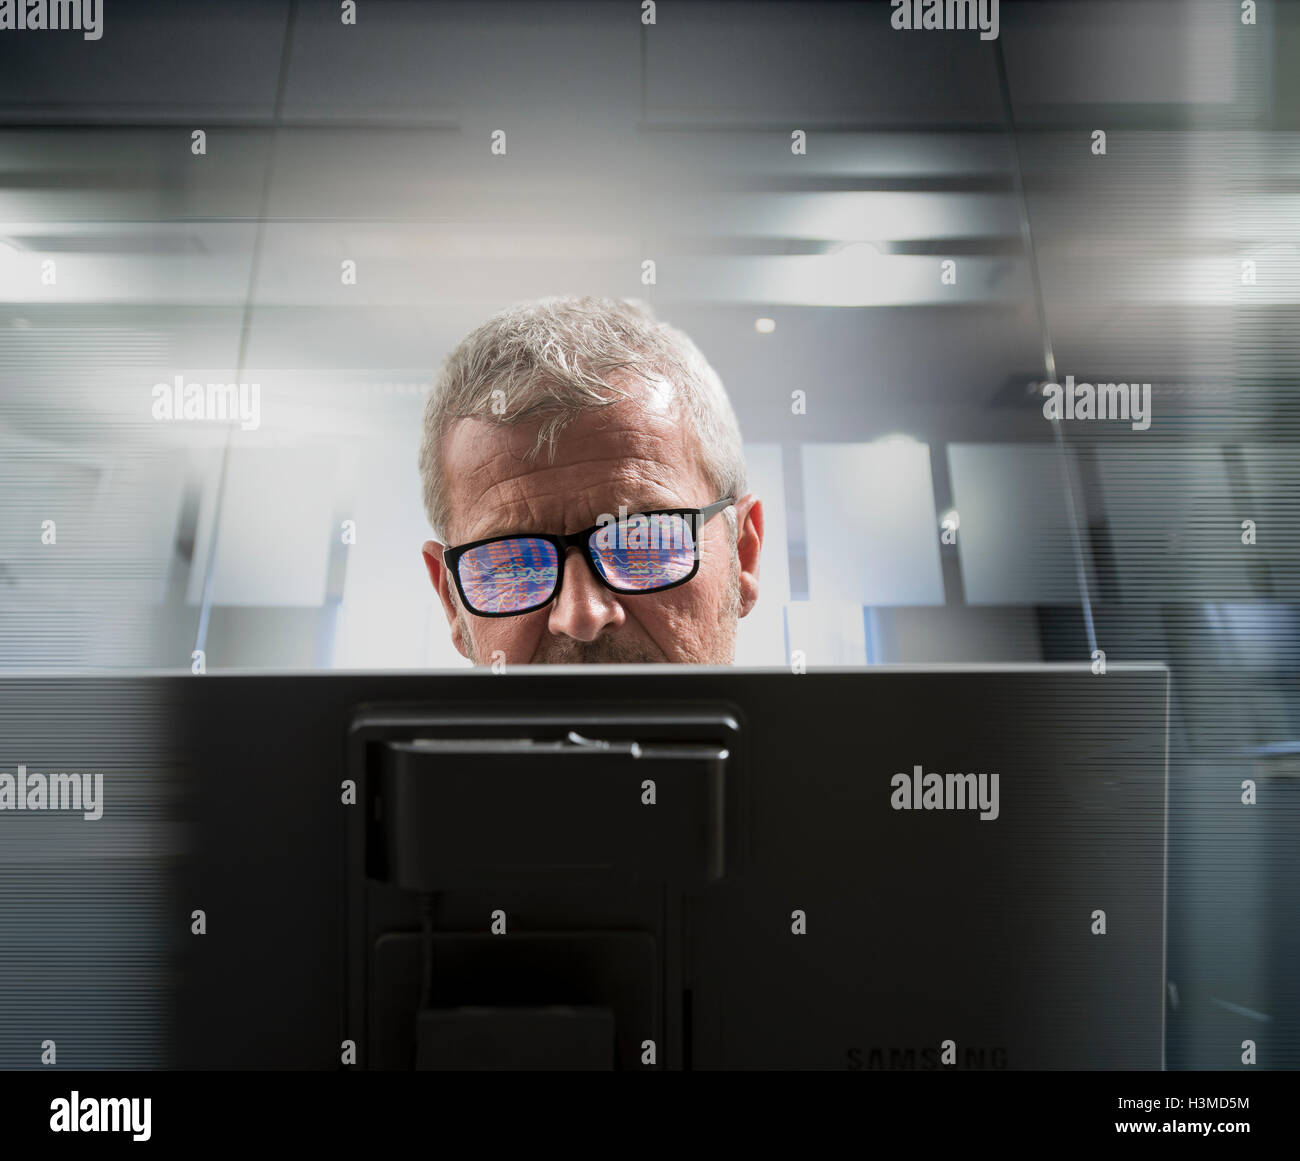 Composite image of businessman at computer screen with graphical data reflected in glasses - Stock Image